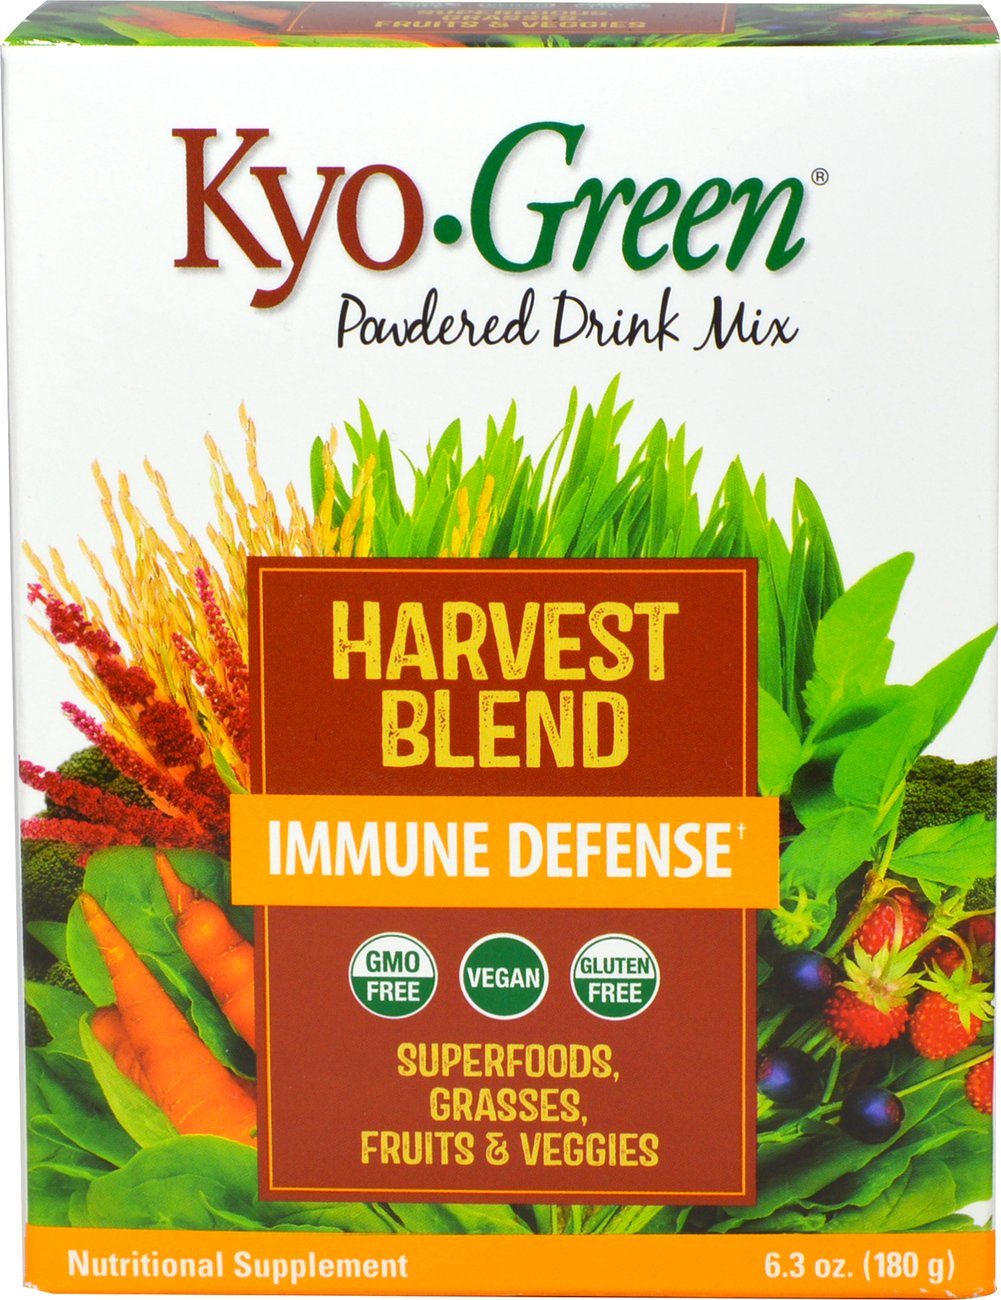 Kyo-Green Harvest Blend Immune Defense Powder